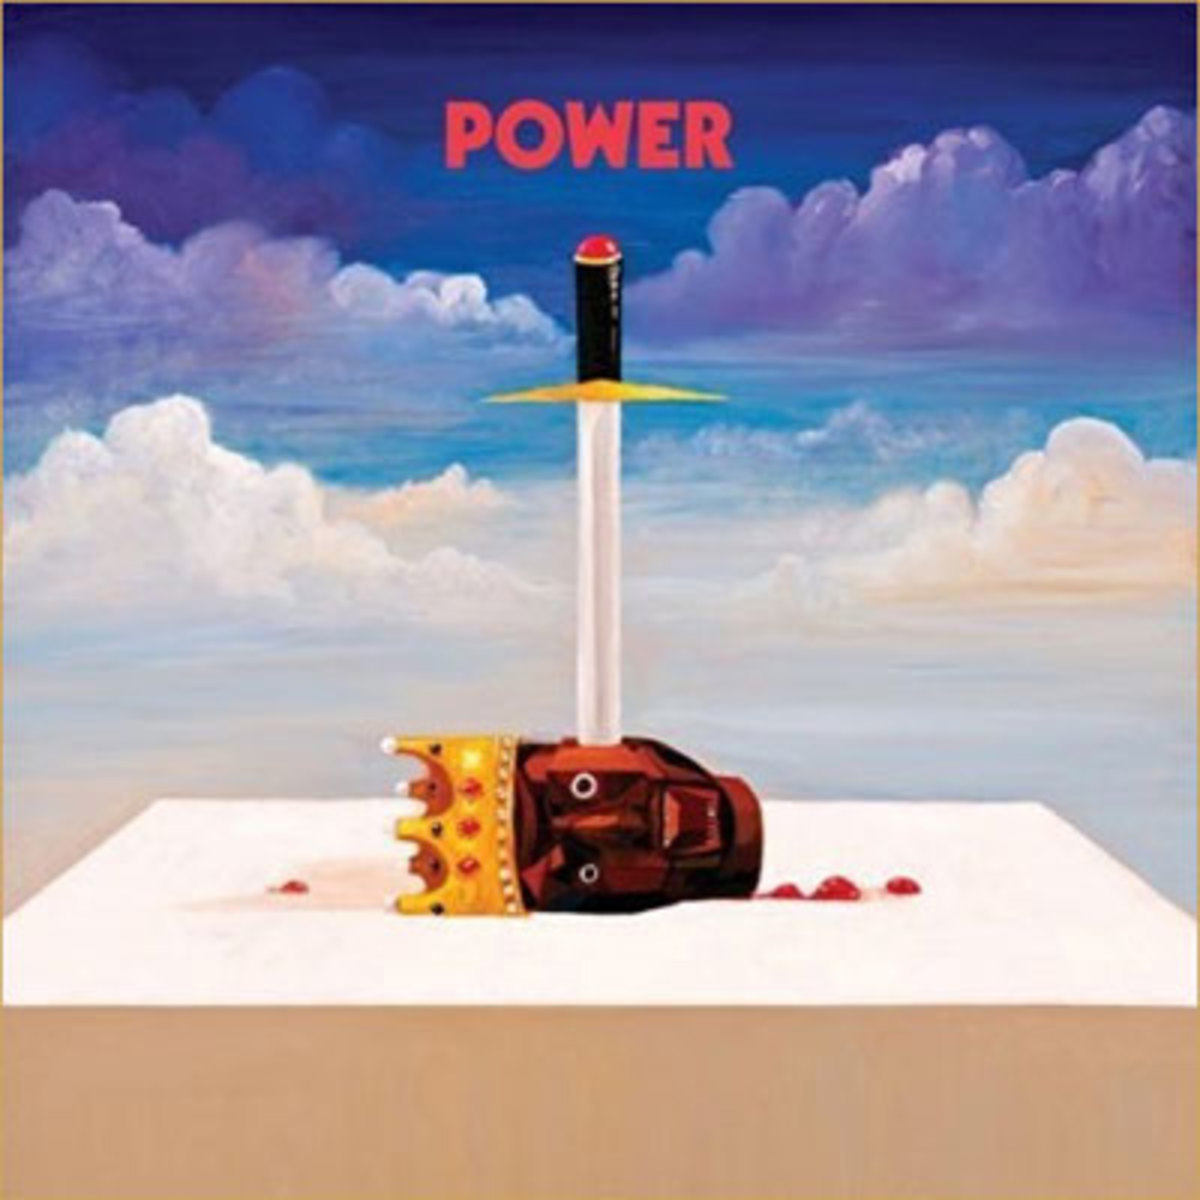 kanyewest-power2.jpg